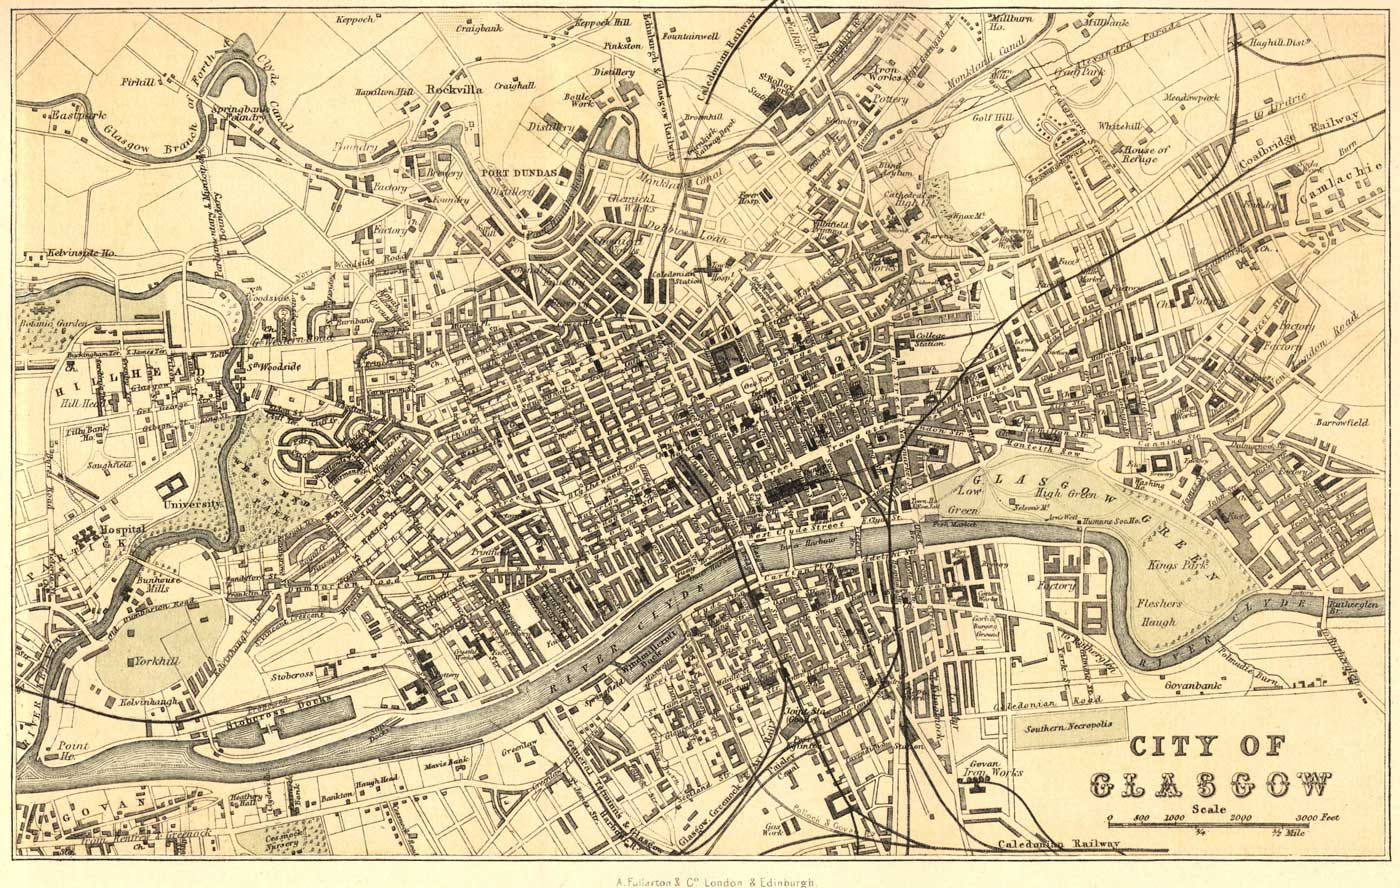 Old Map of Glasgow • Mapsof net